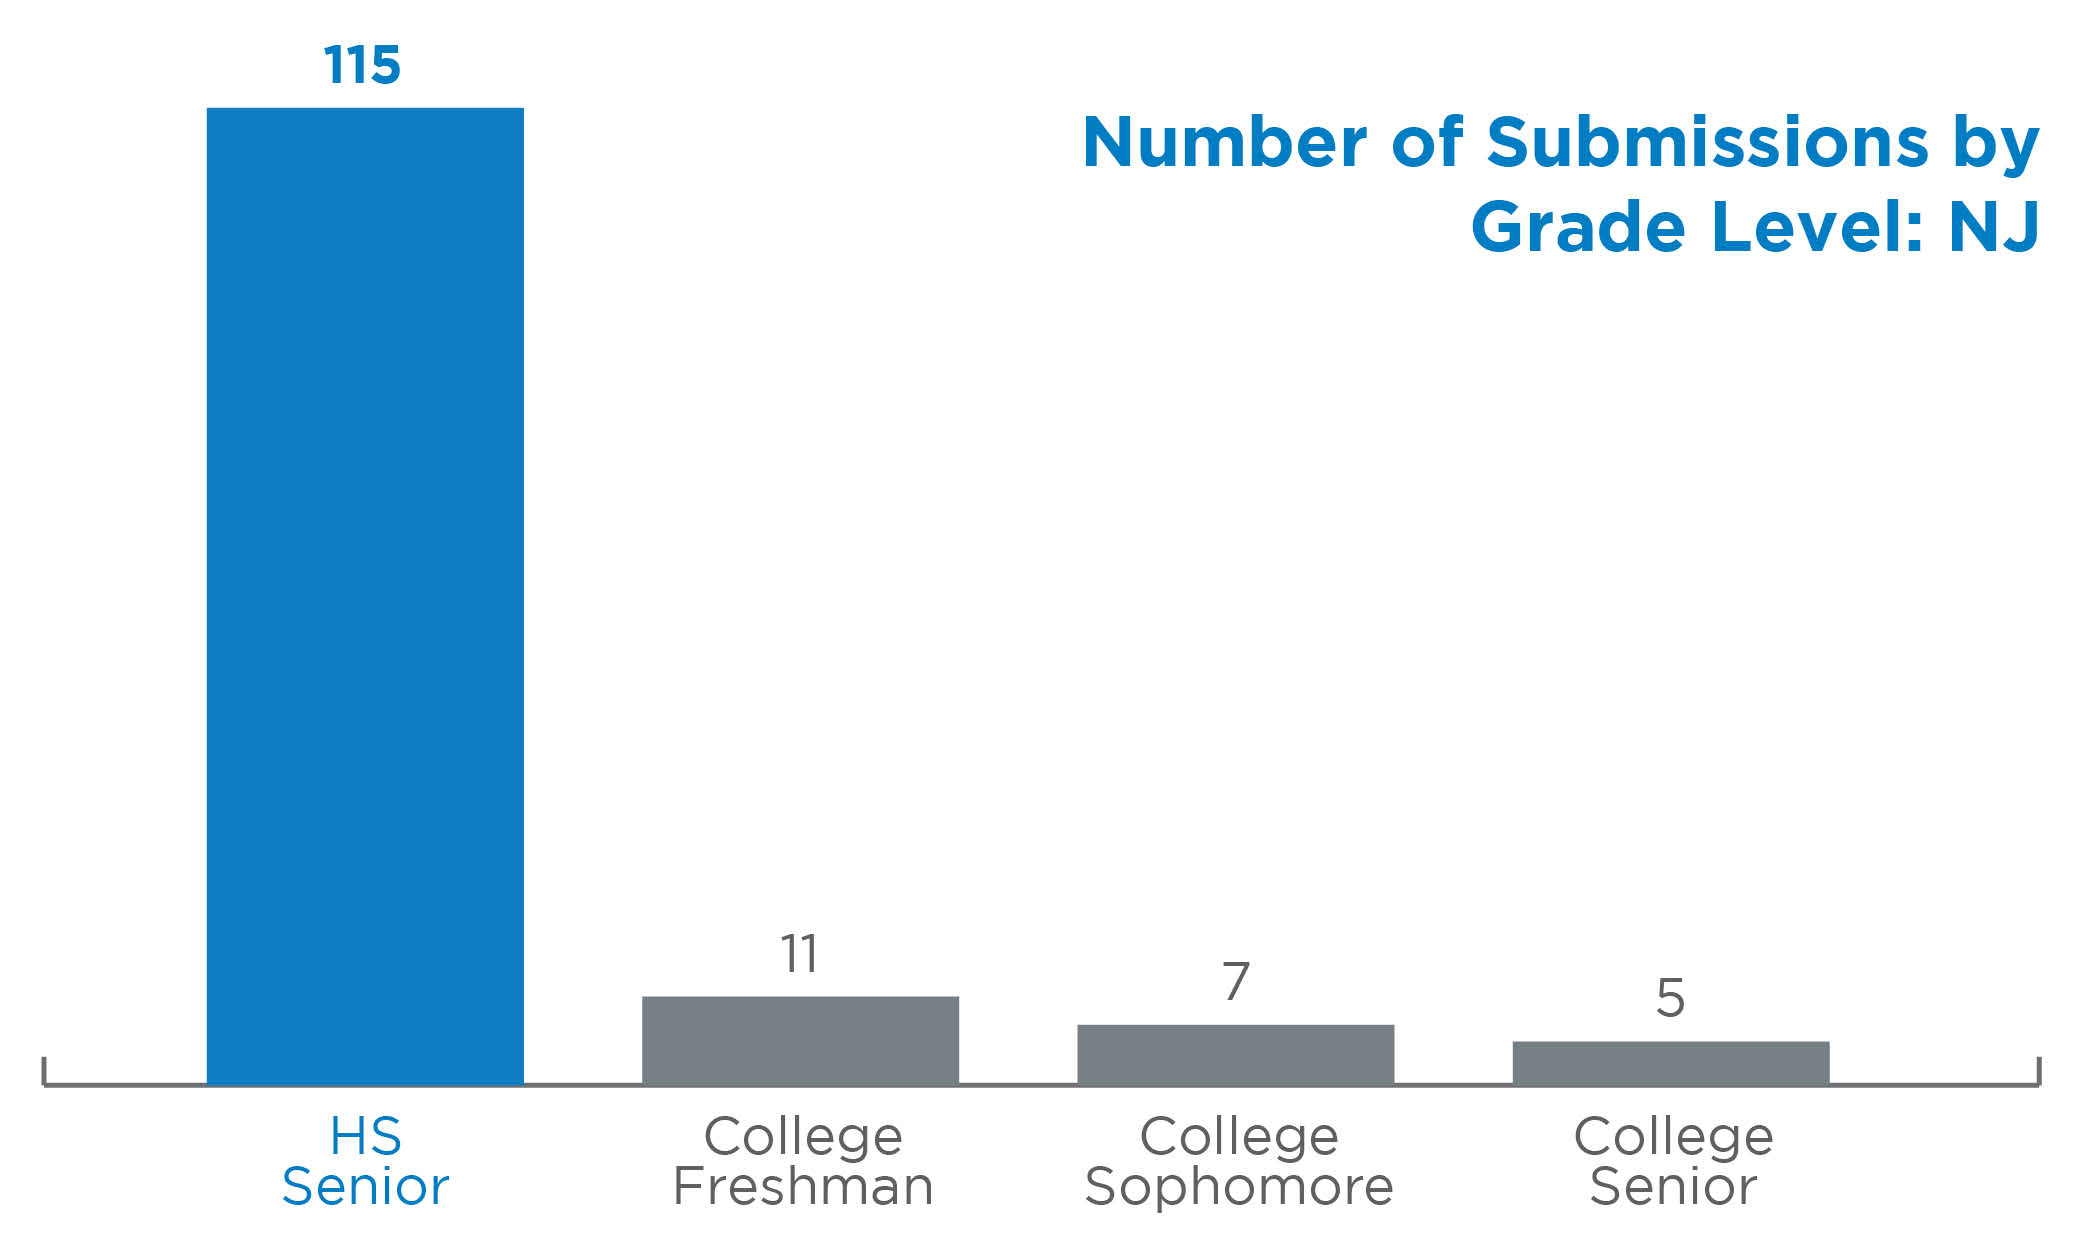 Number of NJ Submissions by Grade Level